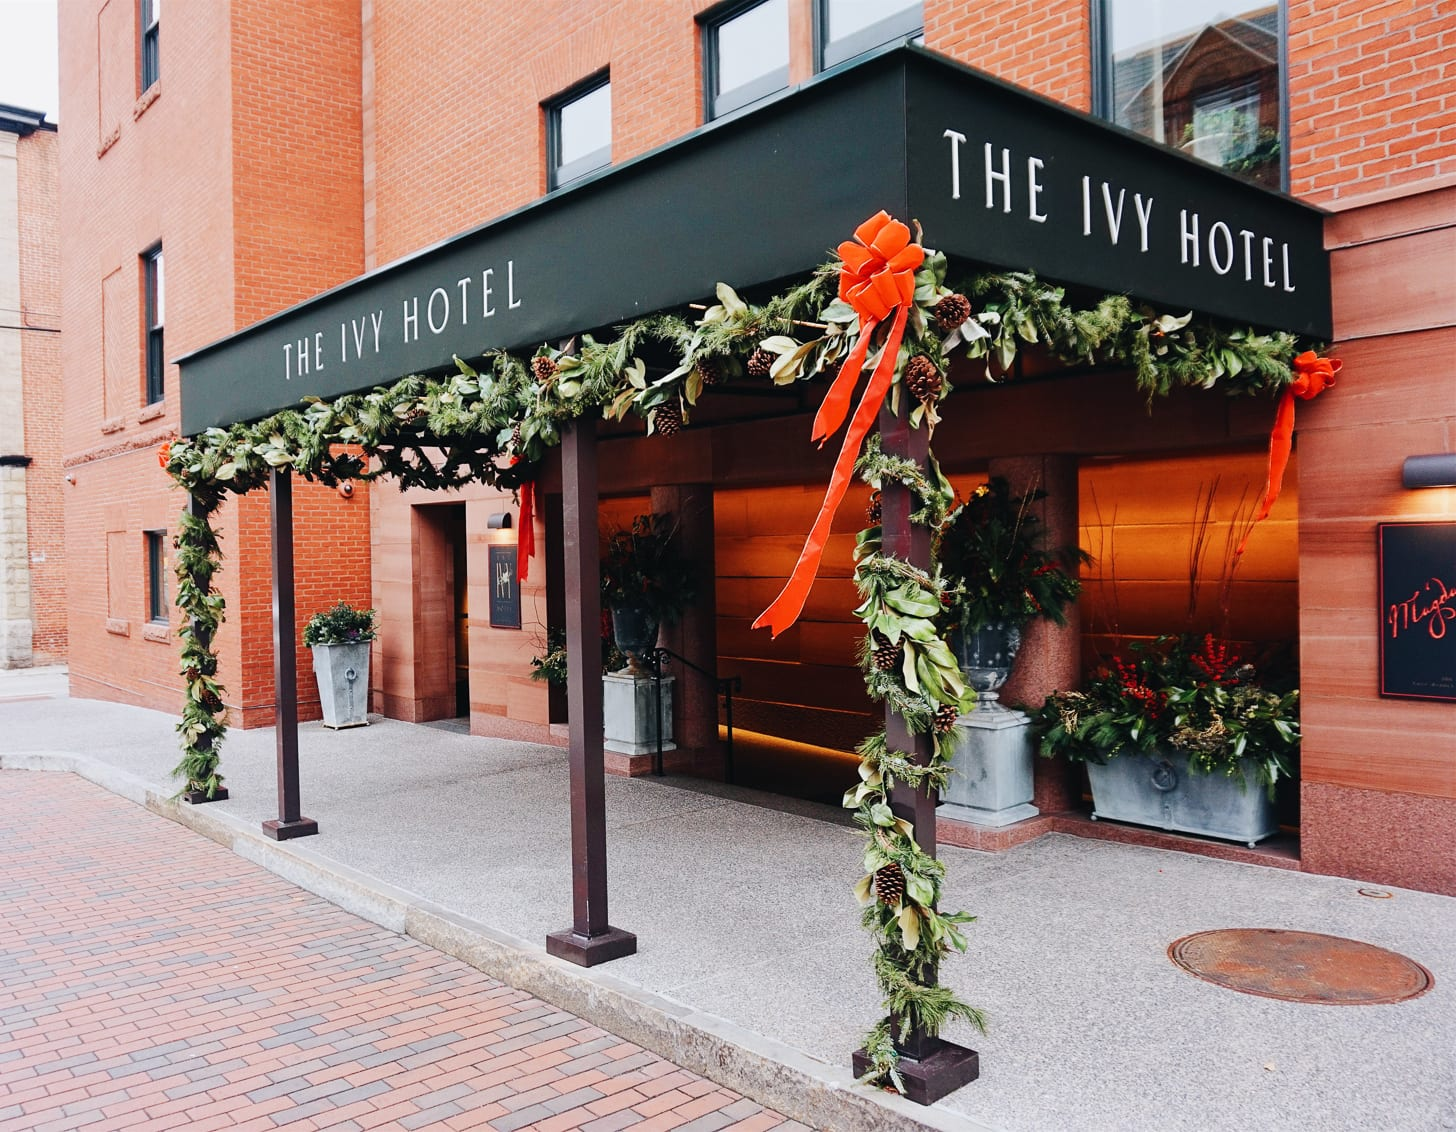 Exterior of The Ivy Hotel Decorated with Holiday Garland